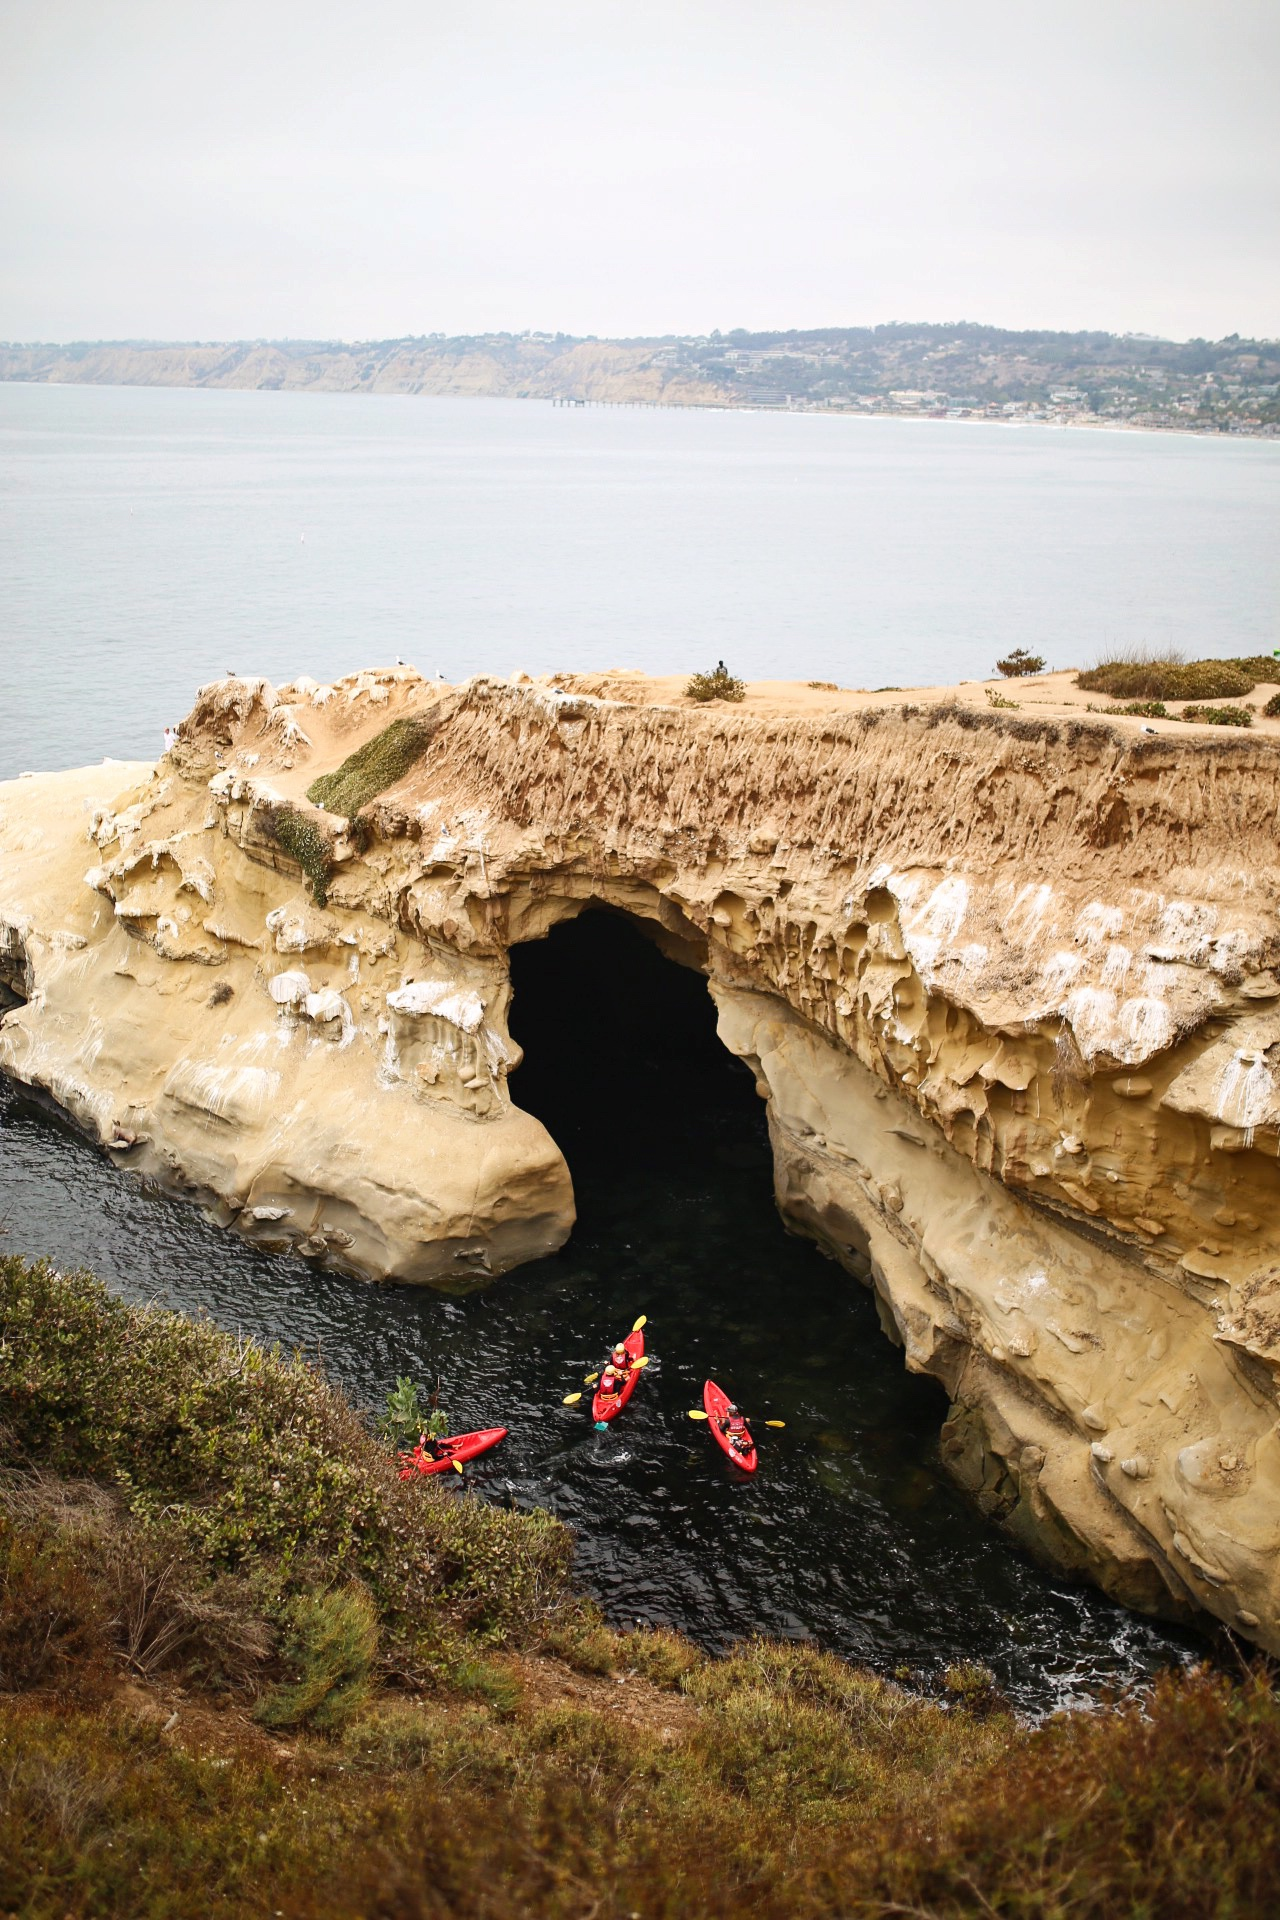 The Ultimate Weekend in San Diego, California - La Jolla Beach and Caves